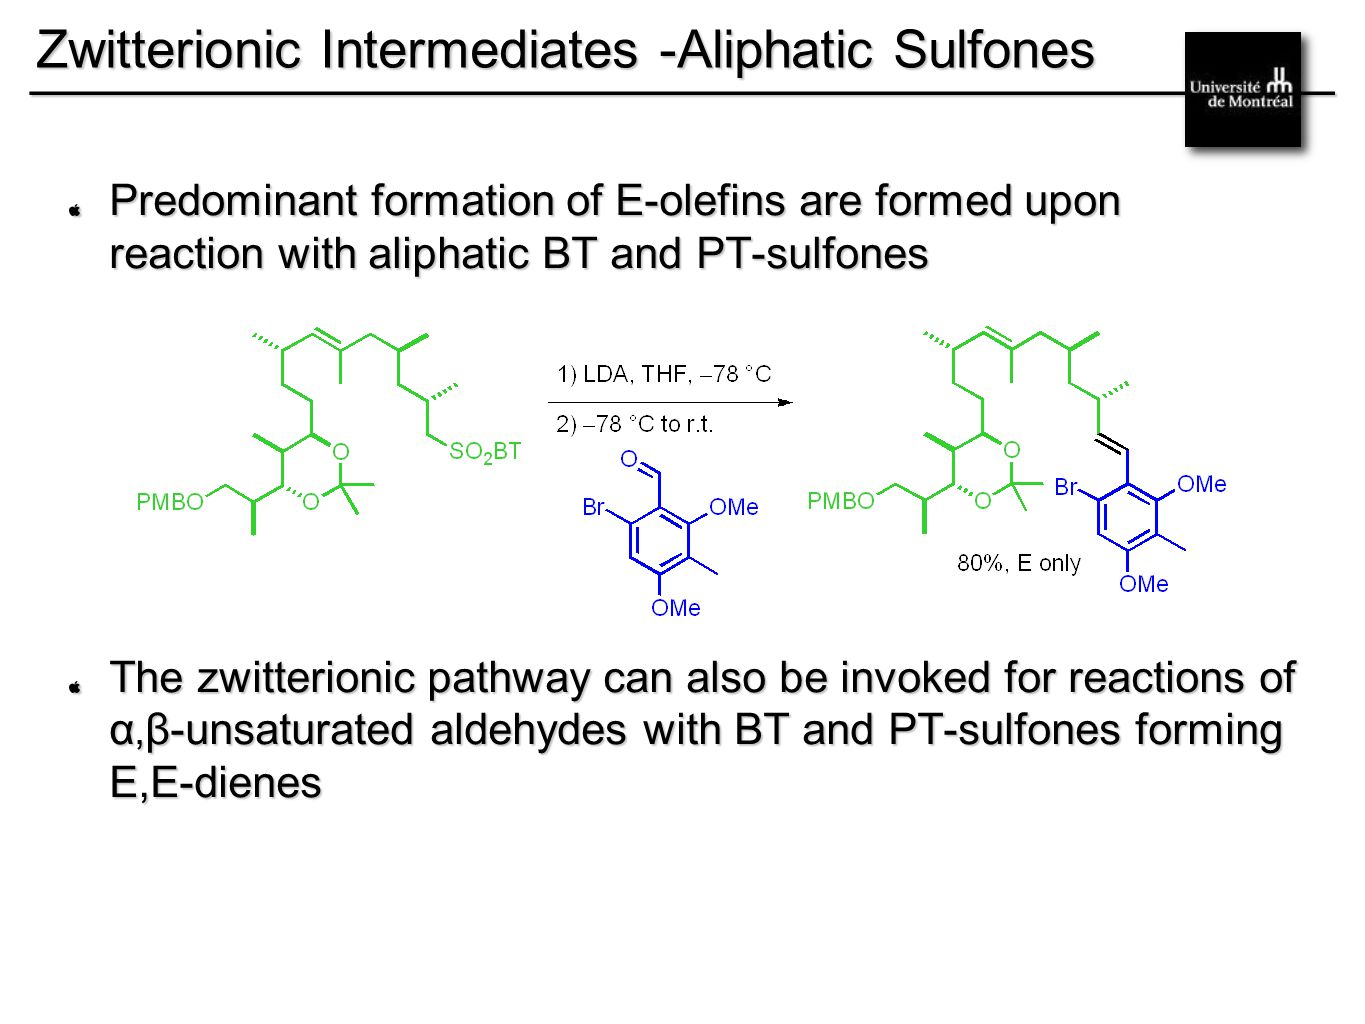 __________________________________________ Zwitterionic Intermediates -Aliphatic Sulfones Predominant formation of E-olefins are formed upon reaction with aliphatic BT and PT-sulfones The zwitterionic pathway can also be invoked for reactions of α, β-unsaturated aldehydes with BT and PT-sulfones forming E,E-dienes